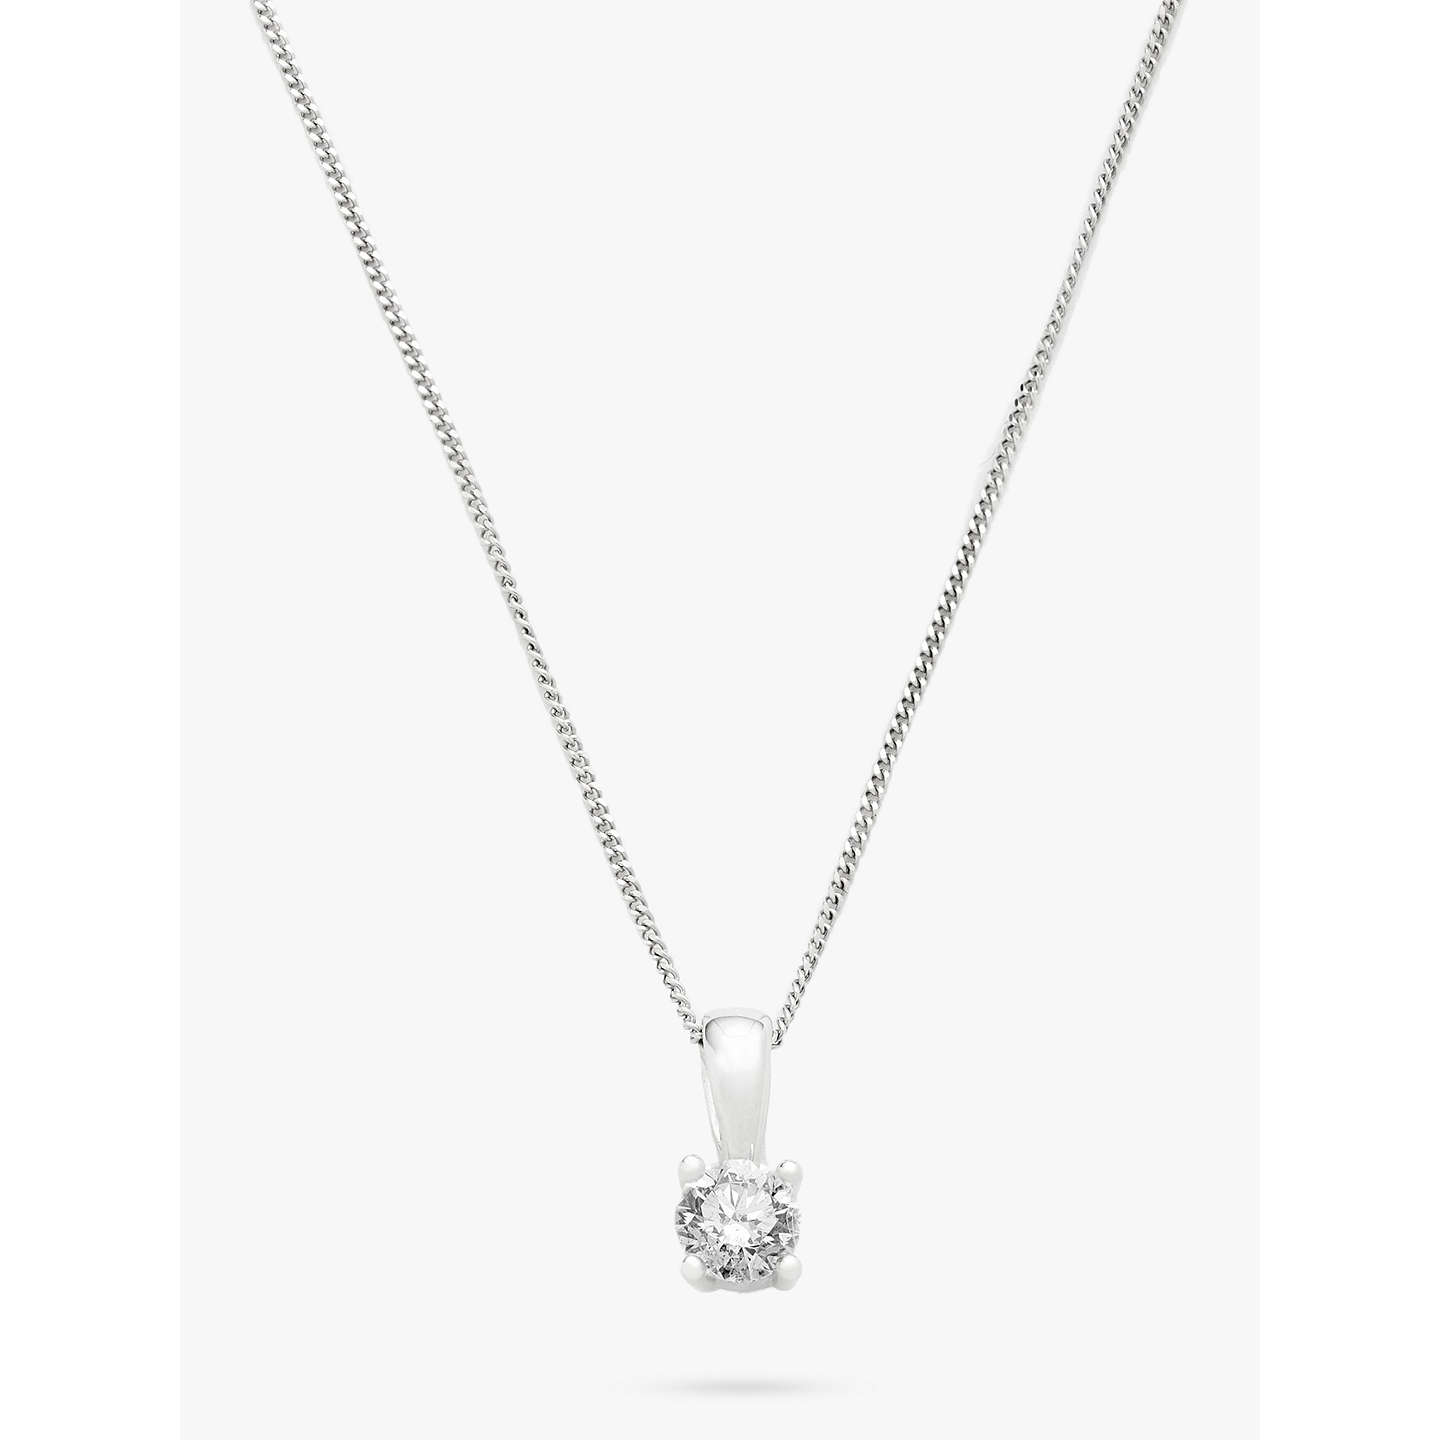 jewelry s necklace tacori diamond women solitaire pendant